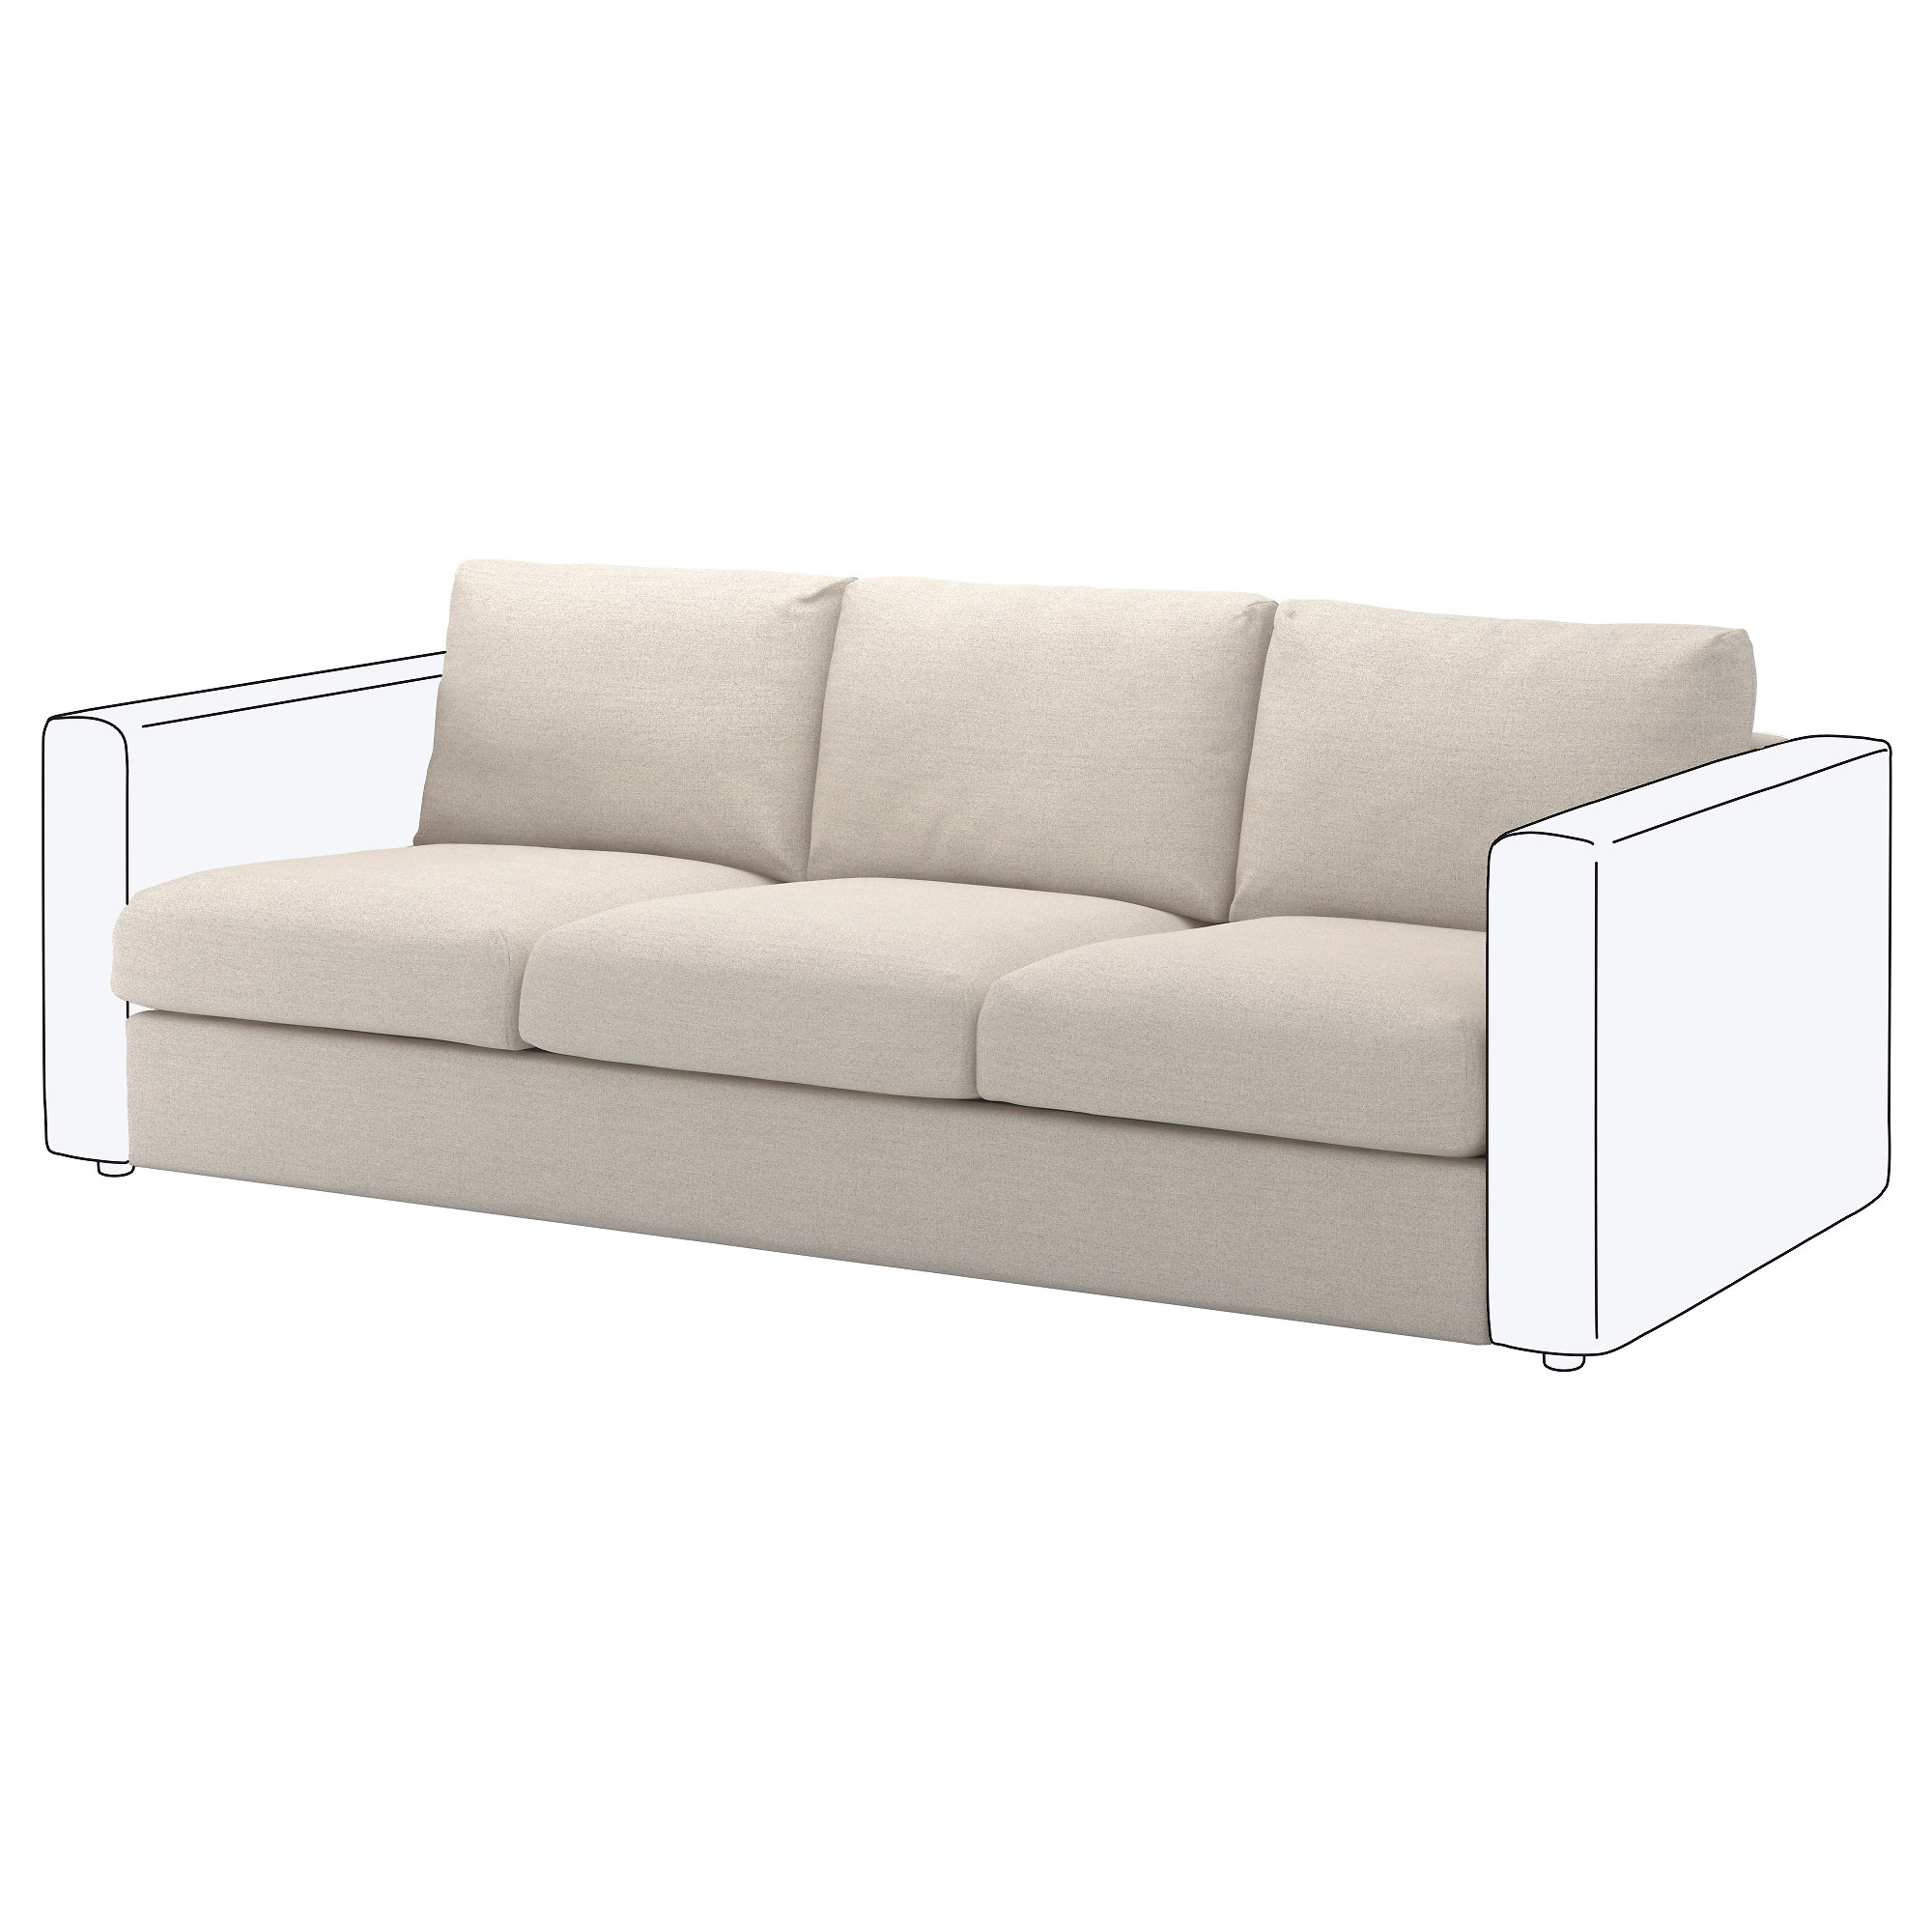 VIMLE Cover for sofa section Gunnared beige IKEA